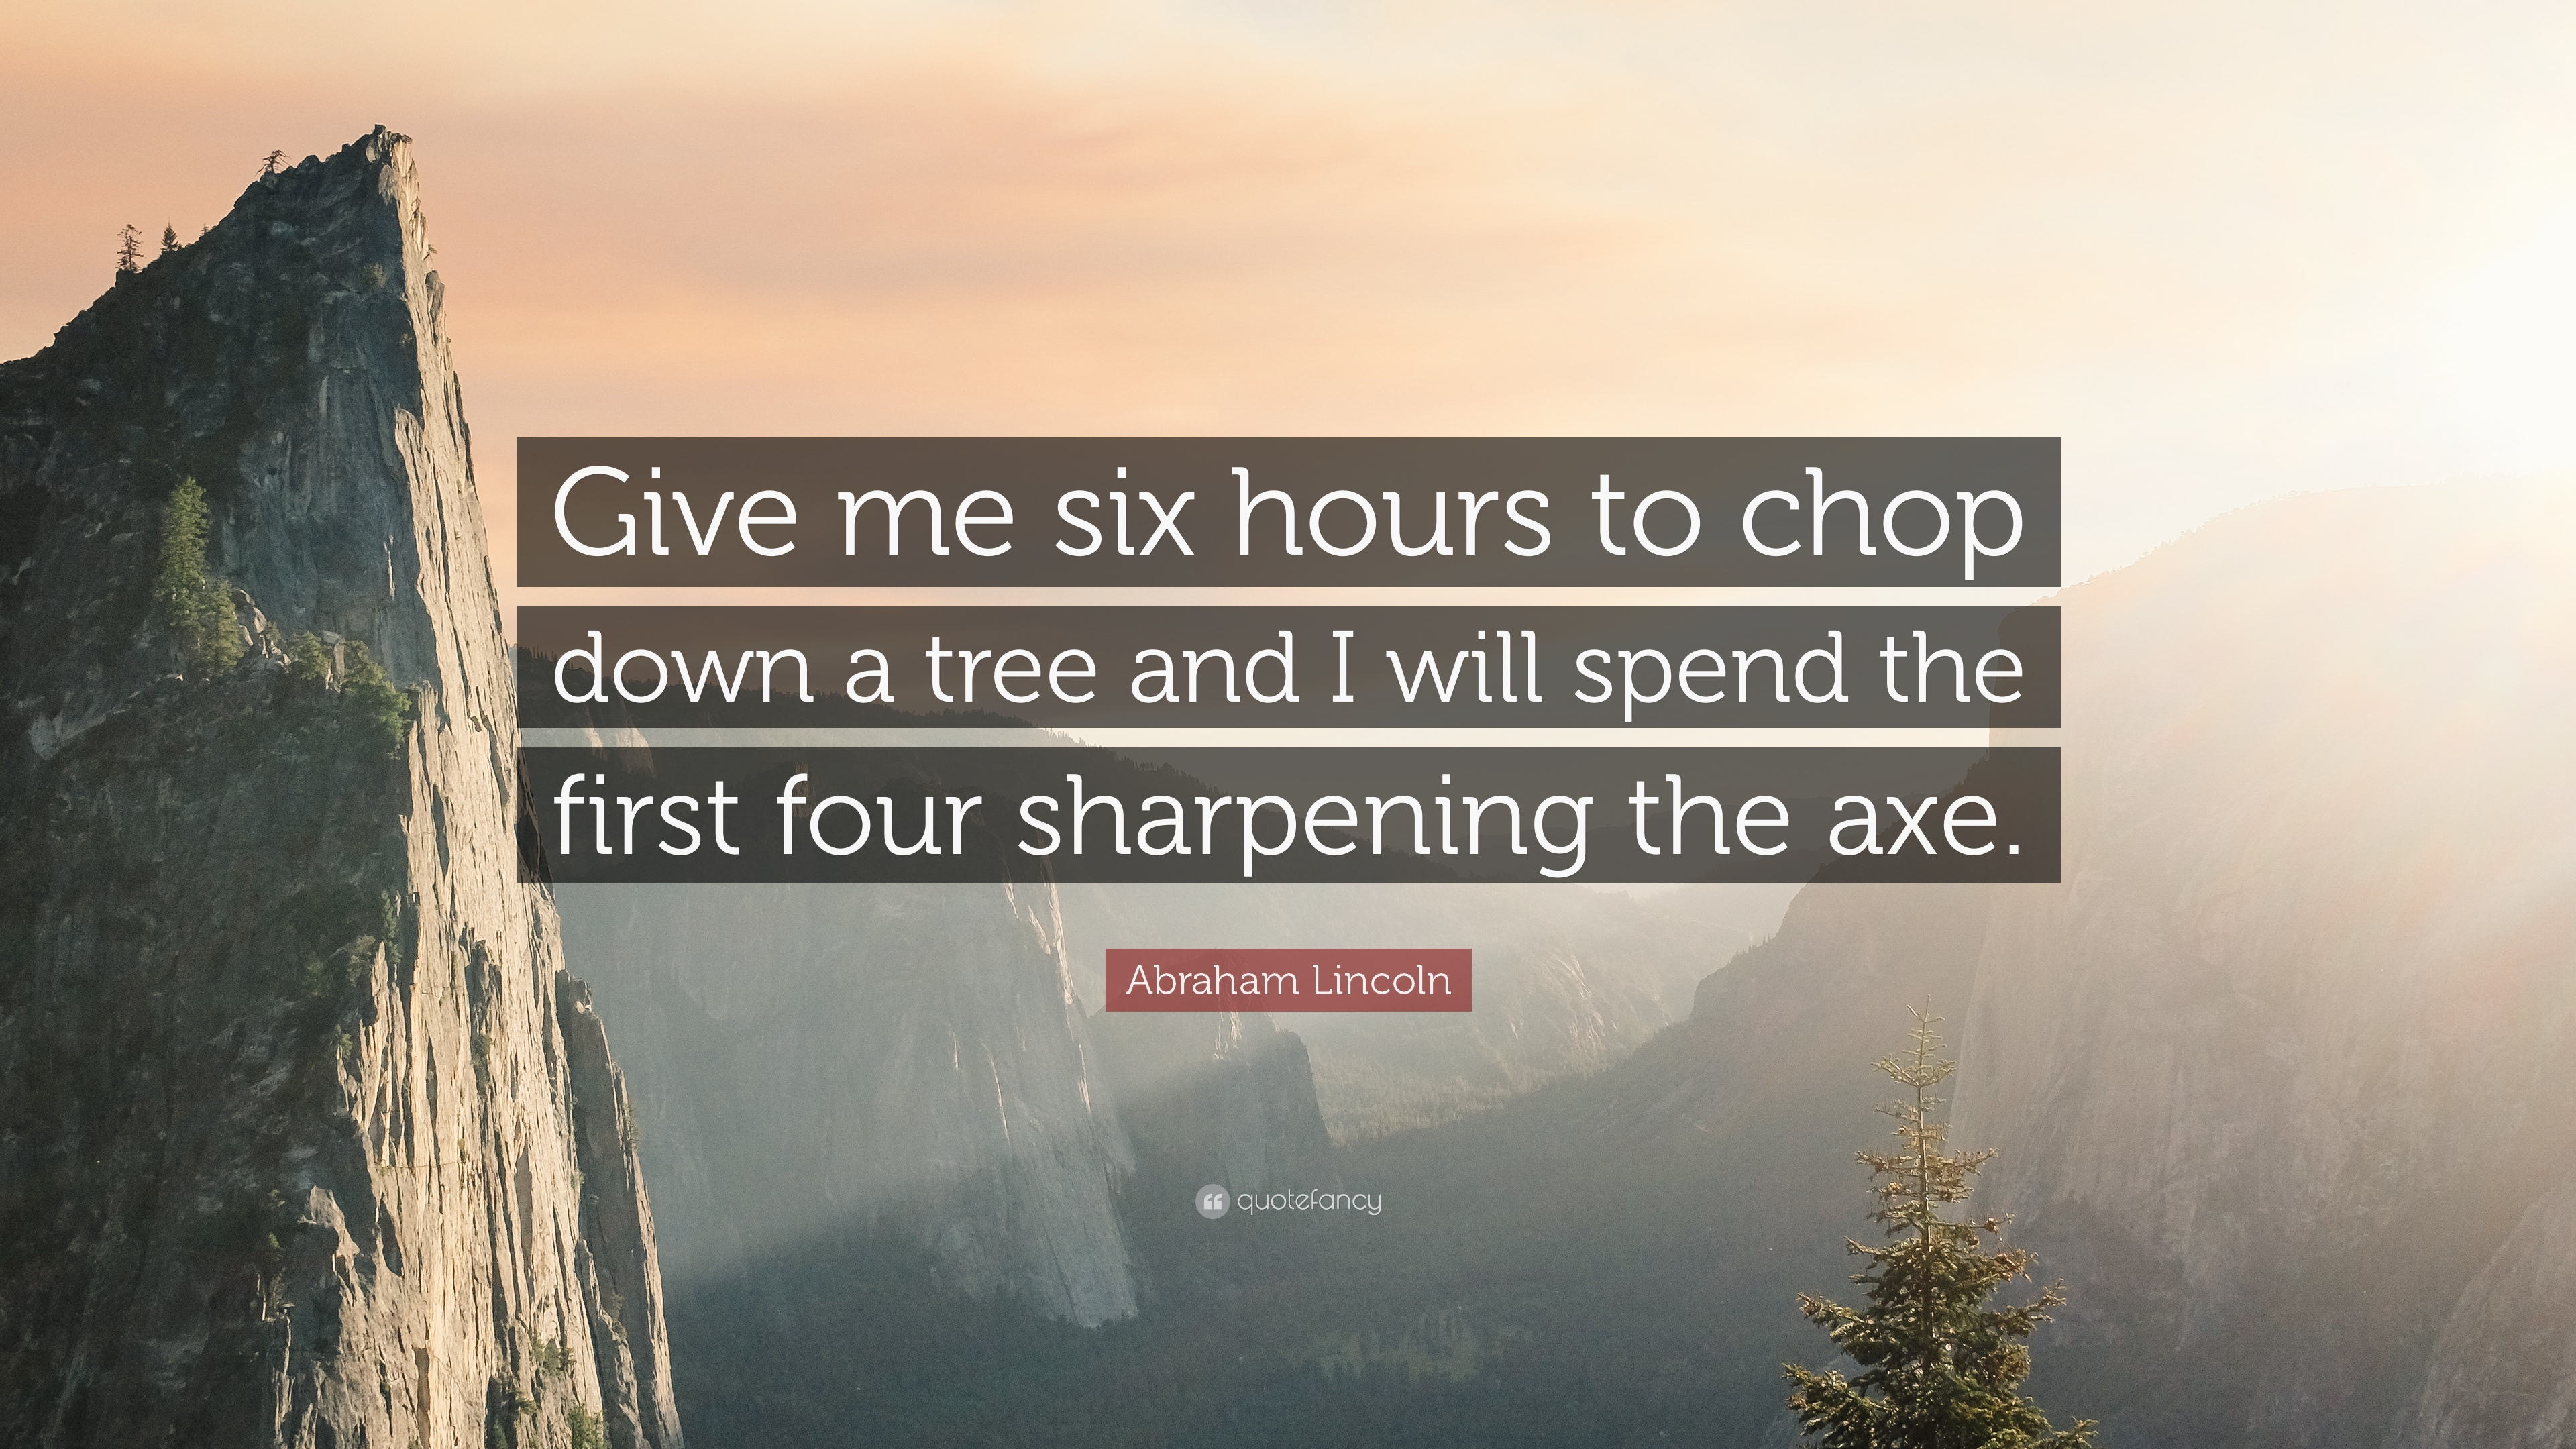 Give me six hours to chop down a tree and I will spend the first four sharpening the axe. – Abraham Lincoln (3840 × 2160)